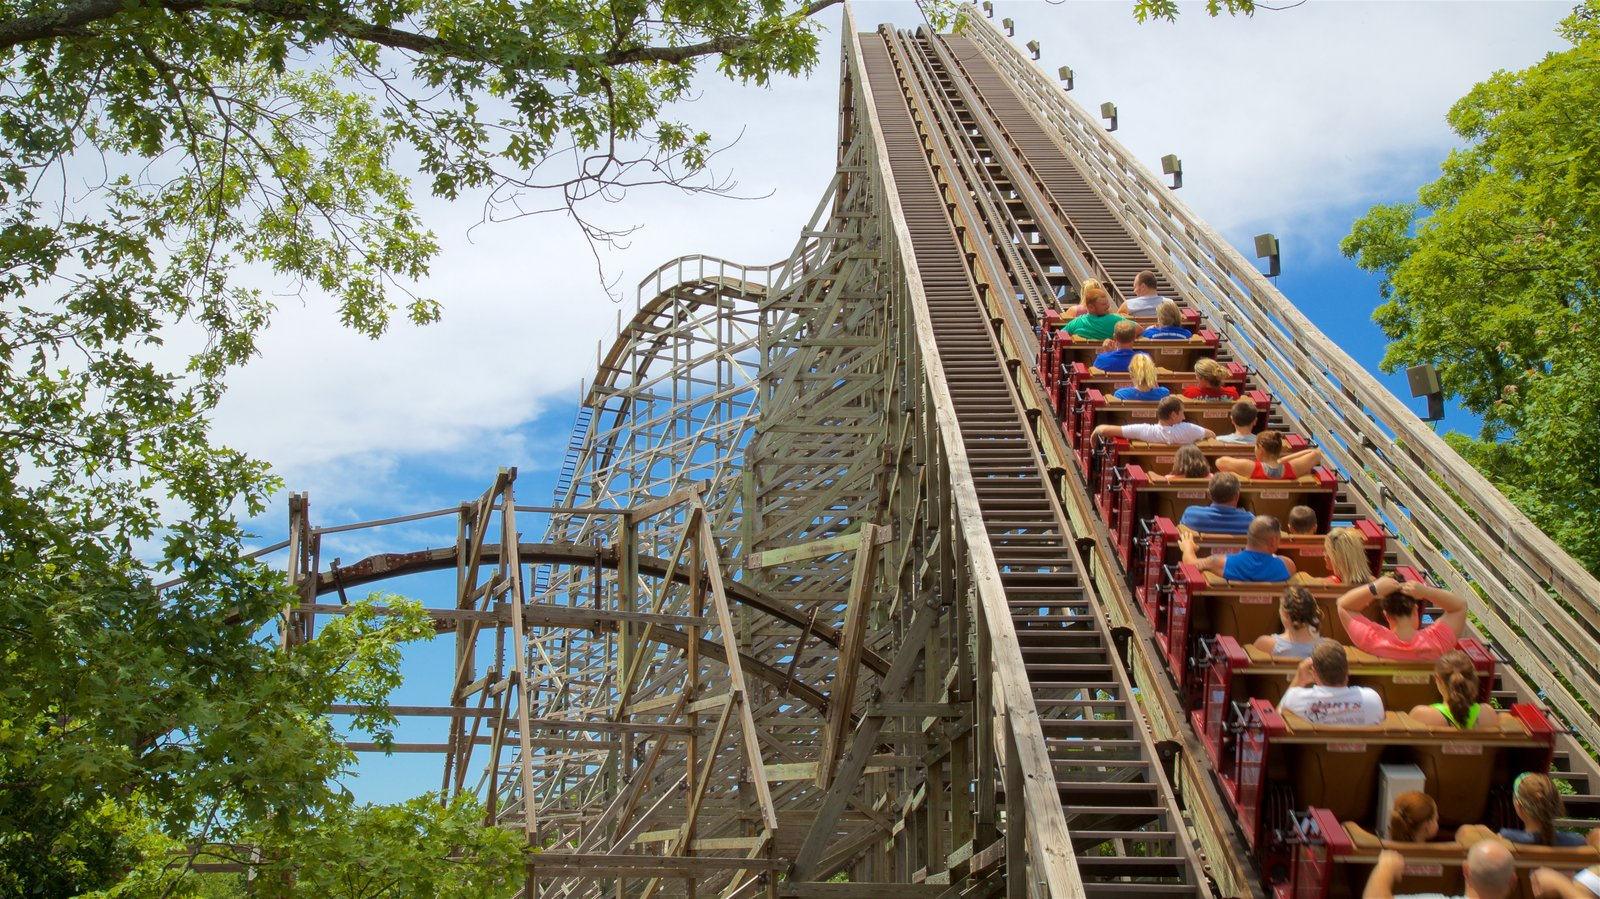 Silver Dollar City featuring rides as well as a small group of people